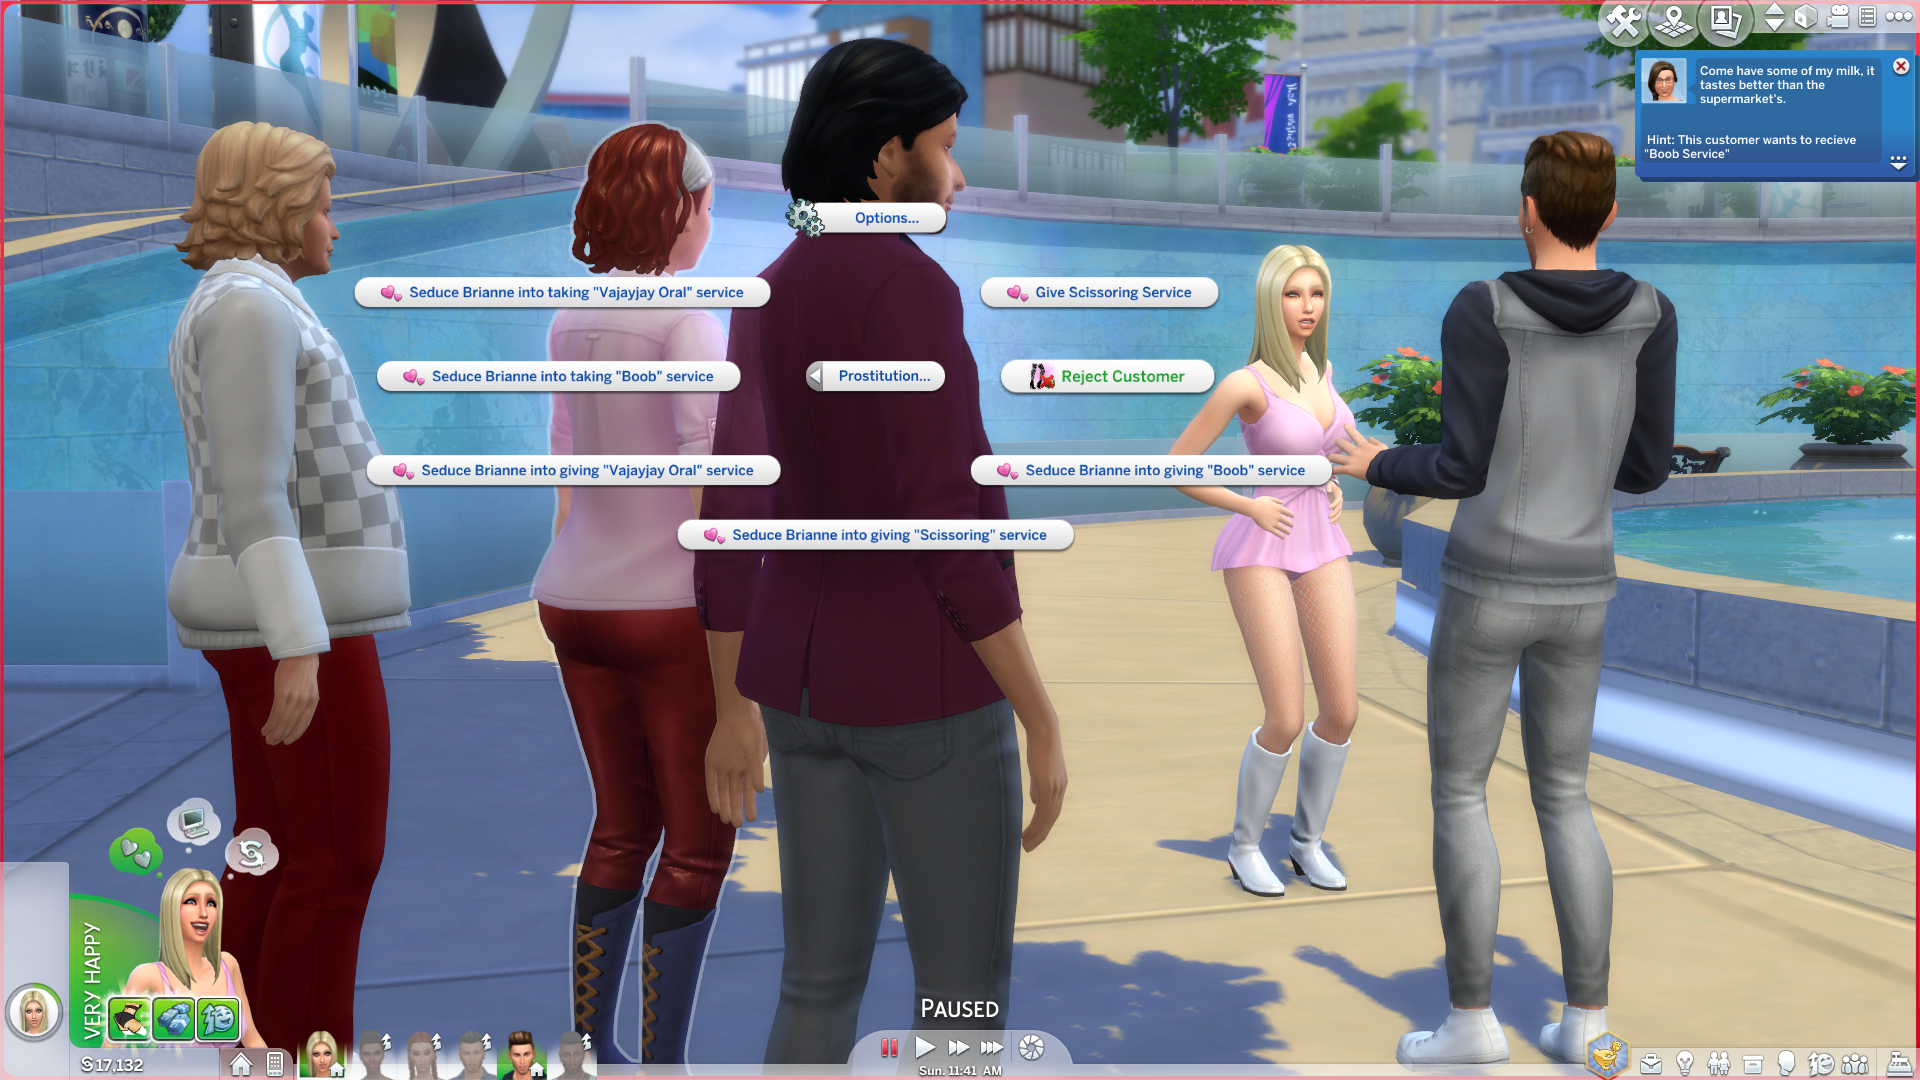 sims 4 hoe it up mod free download